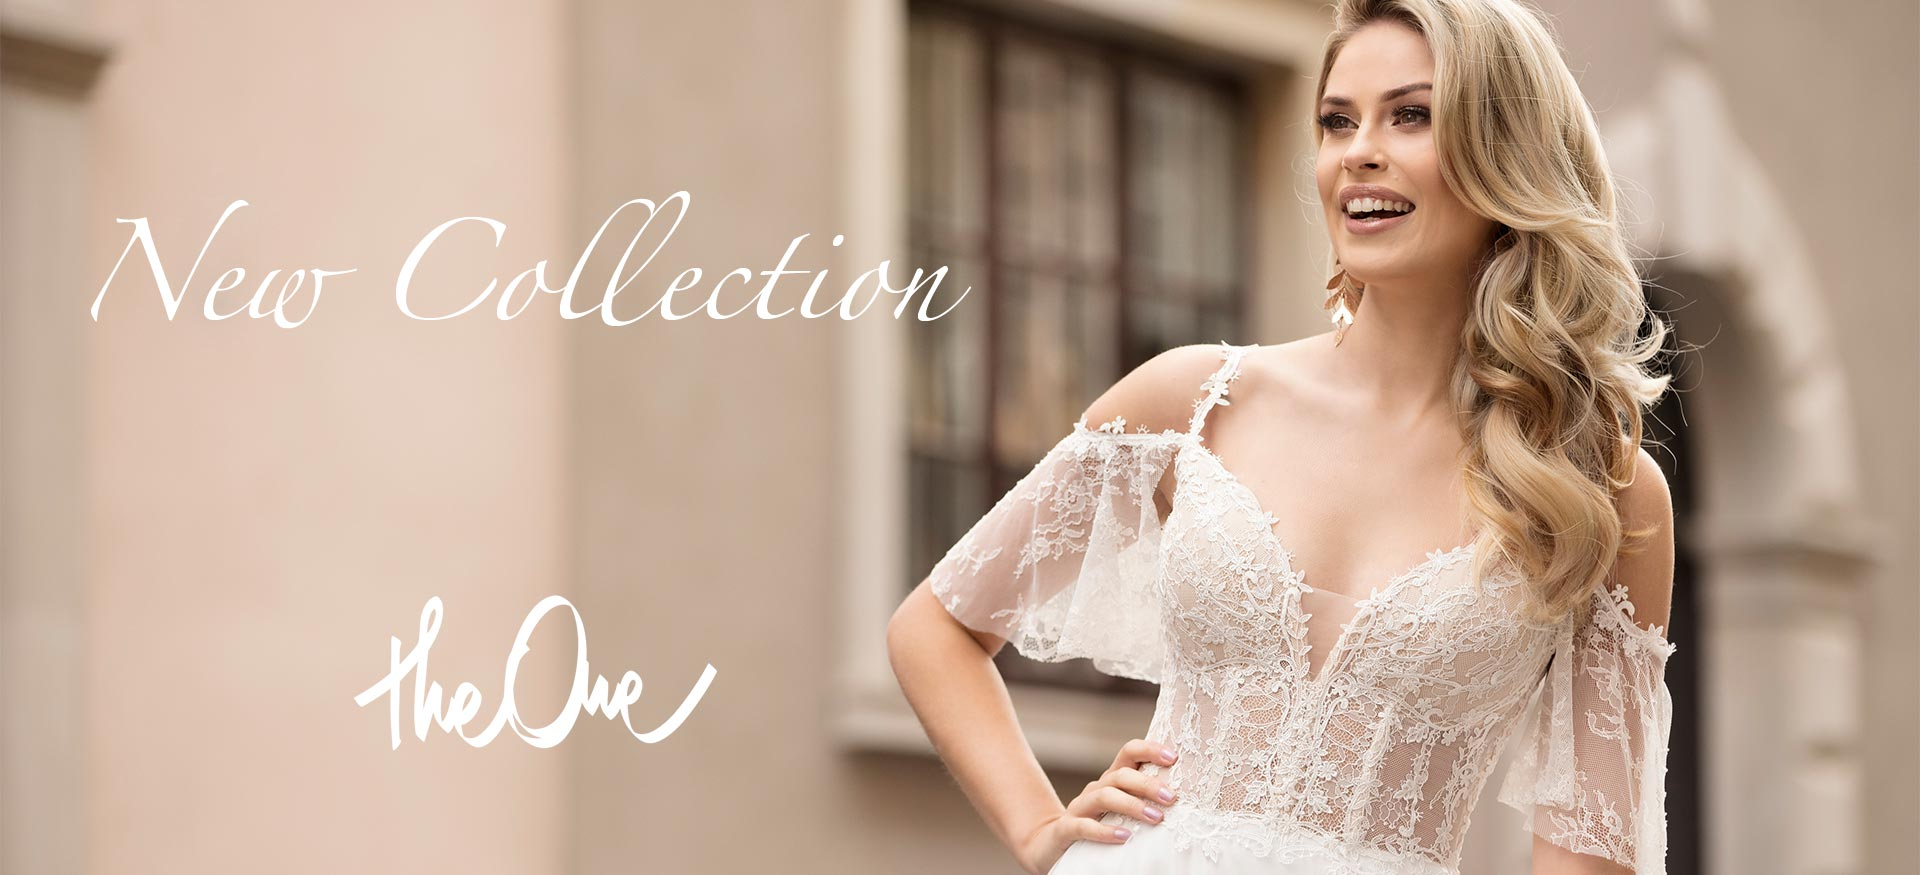 New collection The One 2020